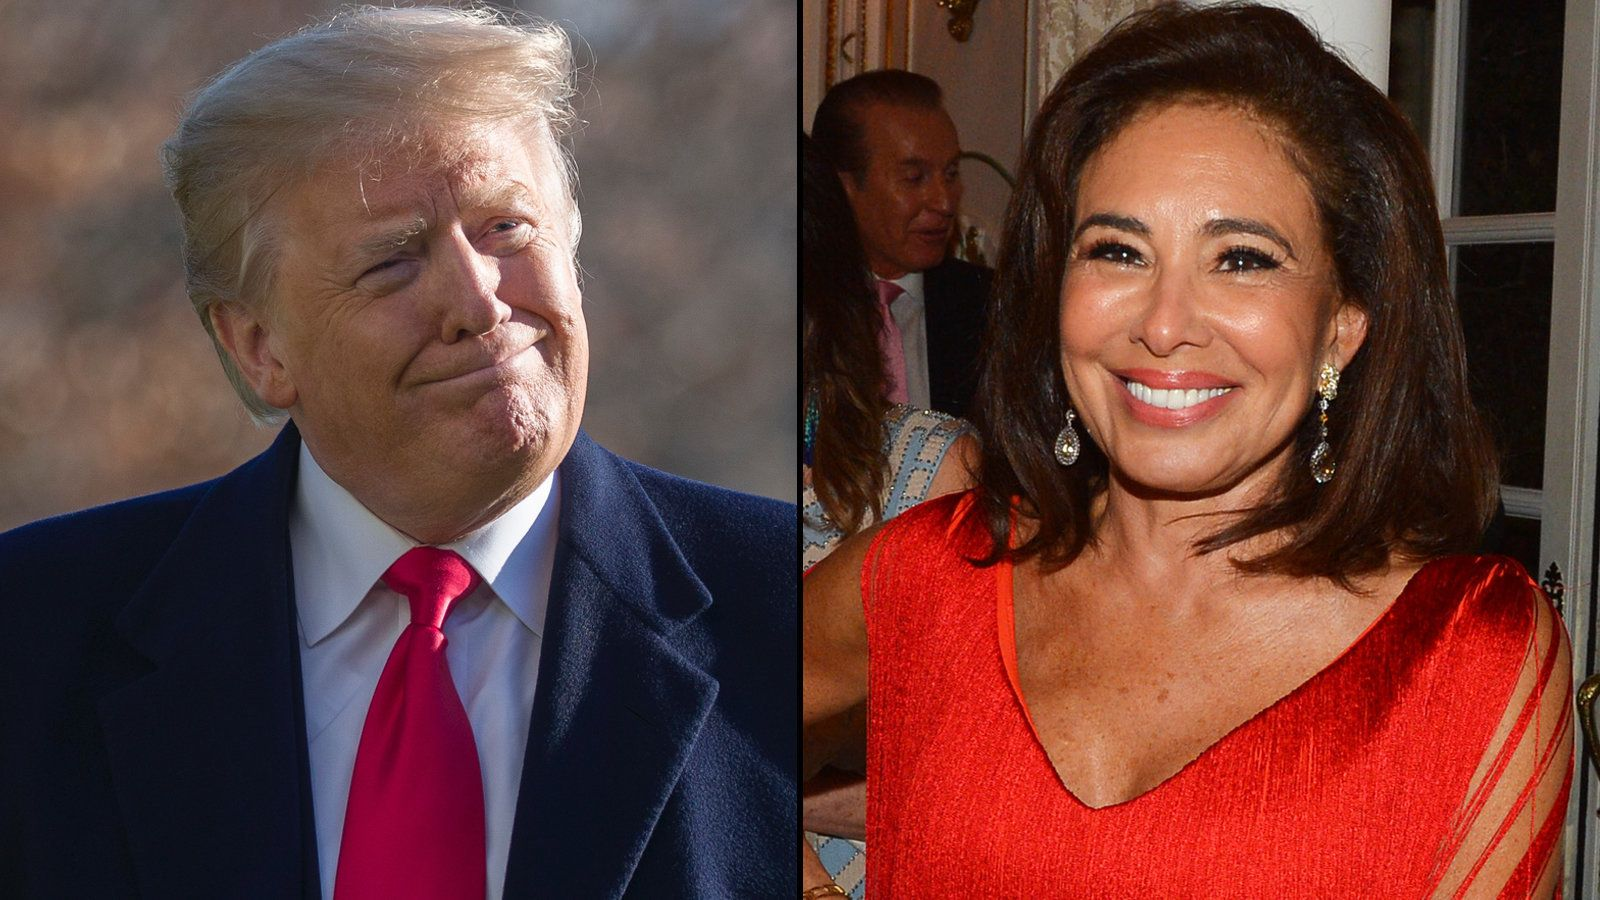 Trump Begs Fox News To 'Bring Back' Jeanine Pirro After Her Rant About Ilhan Omar's Hijab